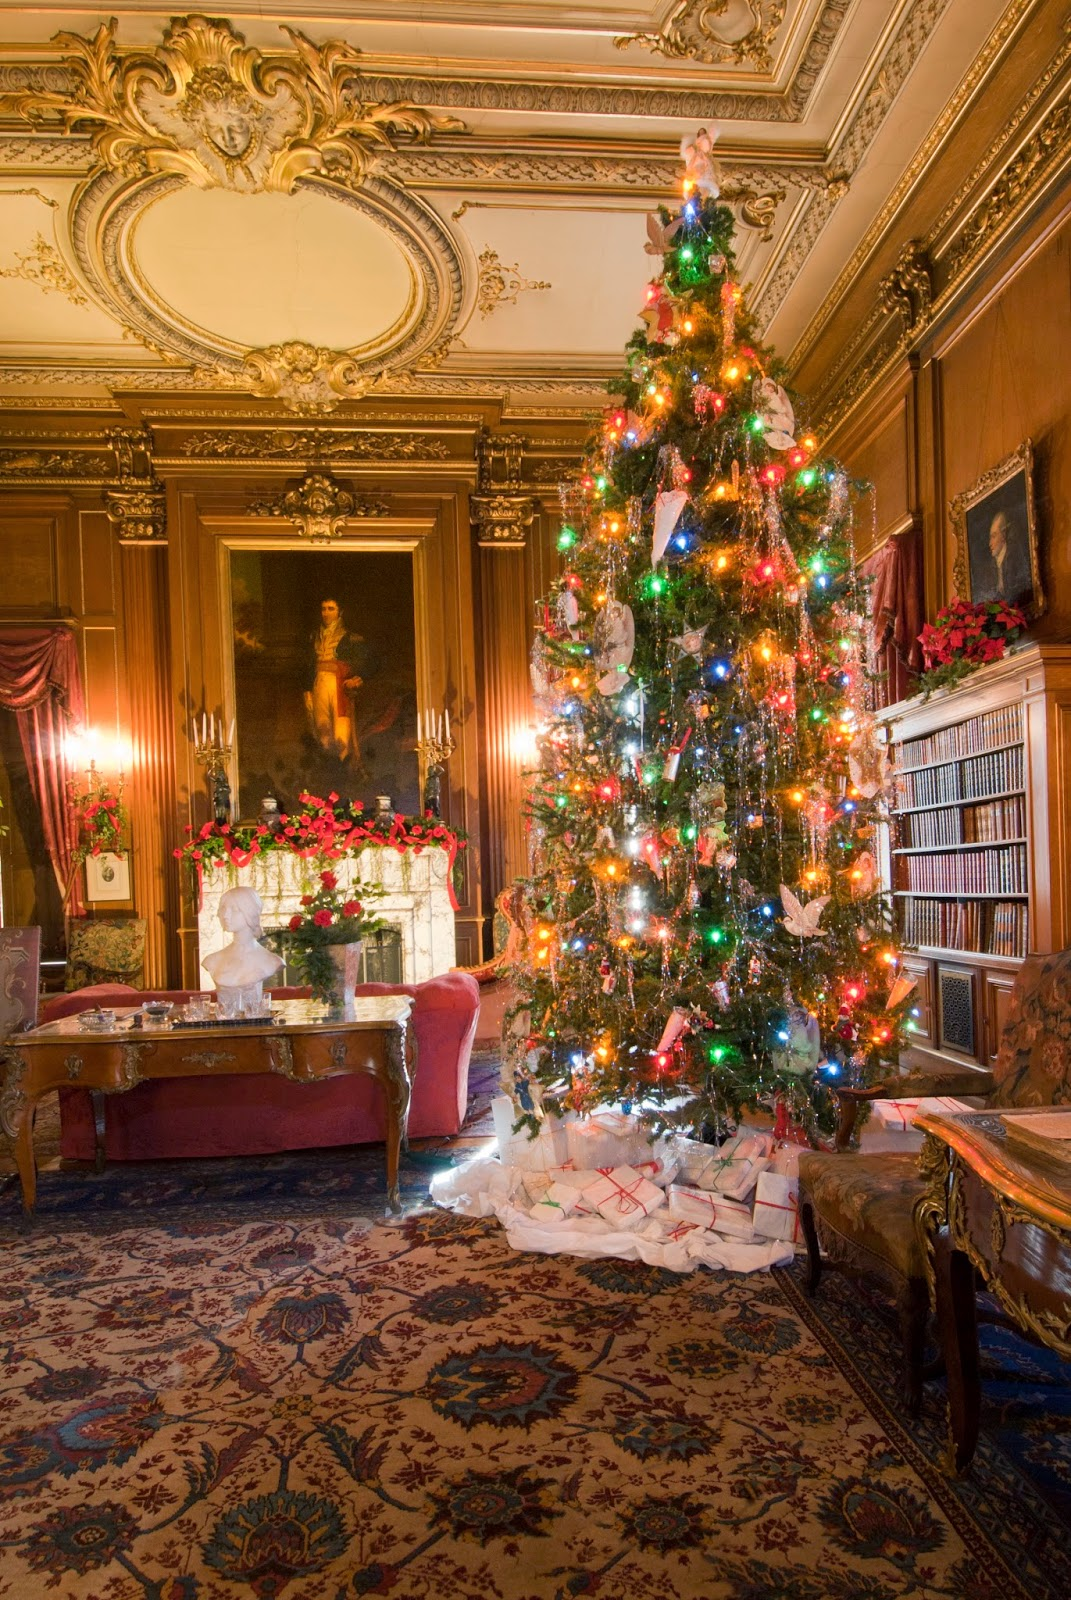 Age Home: Staatsburgh State Historic Site: A Gilded Age Christmas